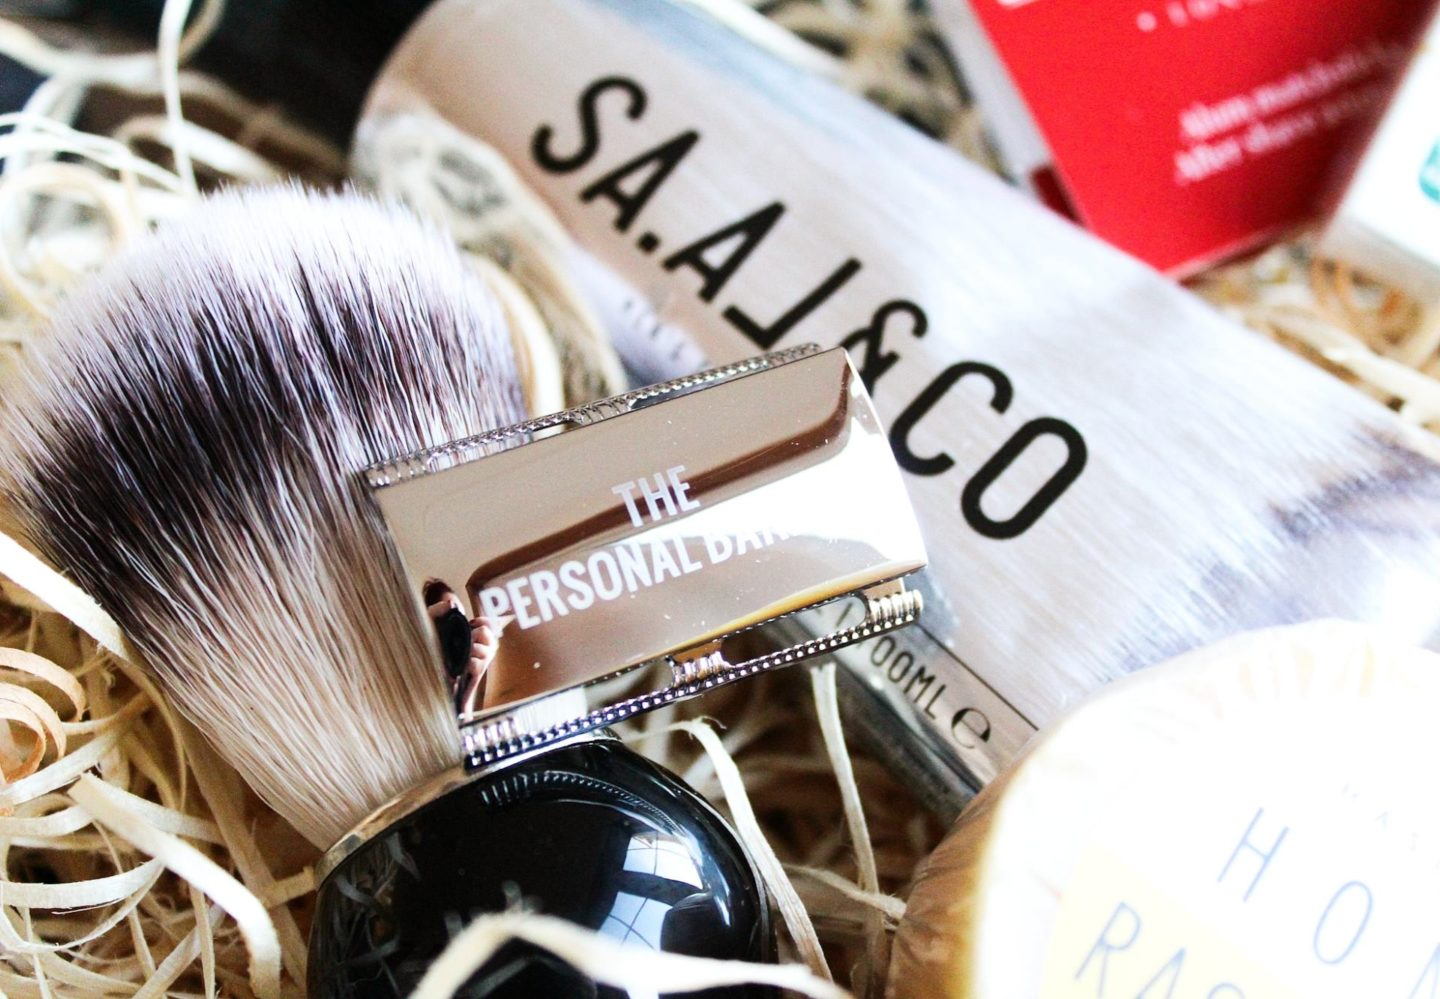 Christmas Gifts for Him 2019 | The Personal Barber Shaving Club